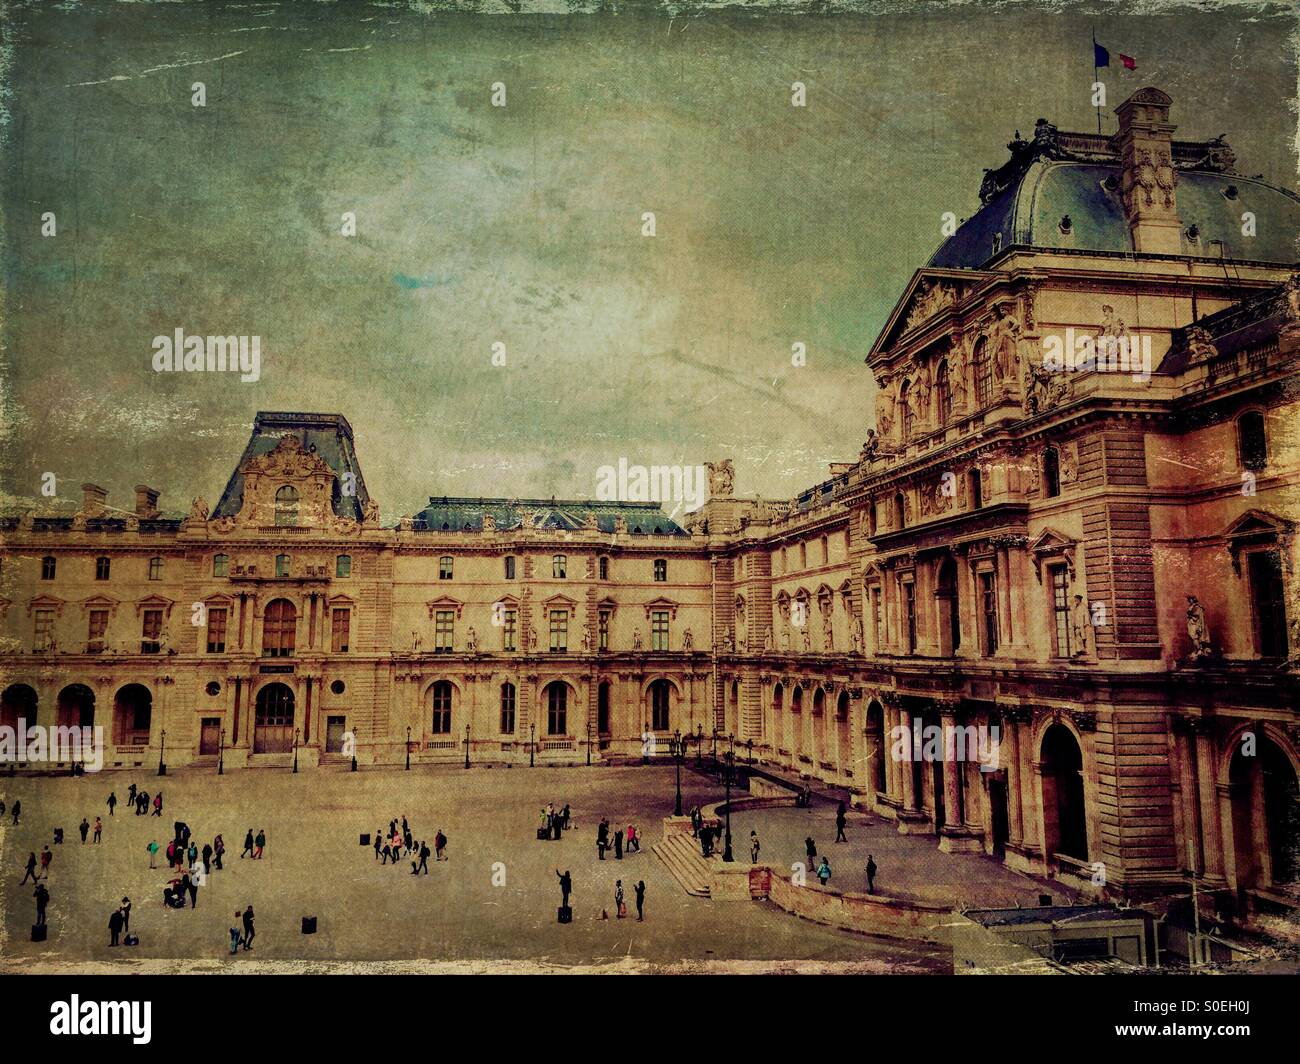 View of Musée du Louvre in Paris, France, taken from a second floor window. Tourists milling  below. Vintage texture Stock Photo